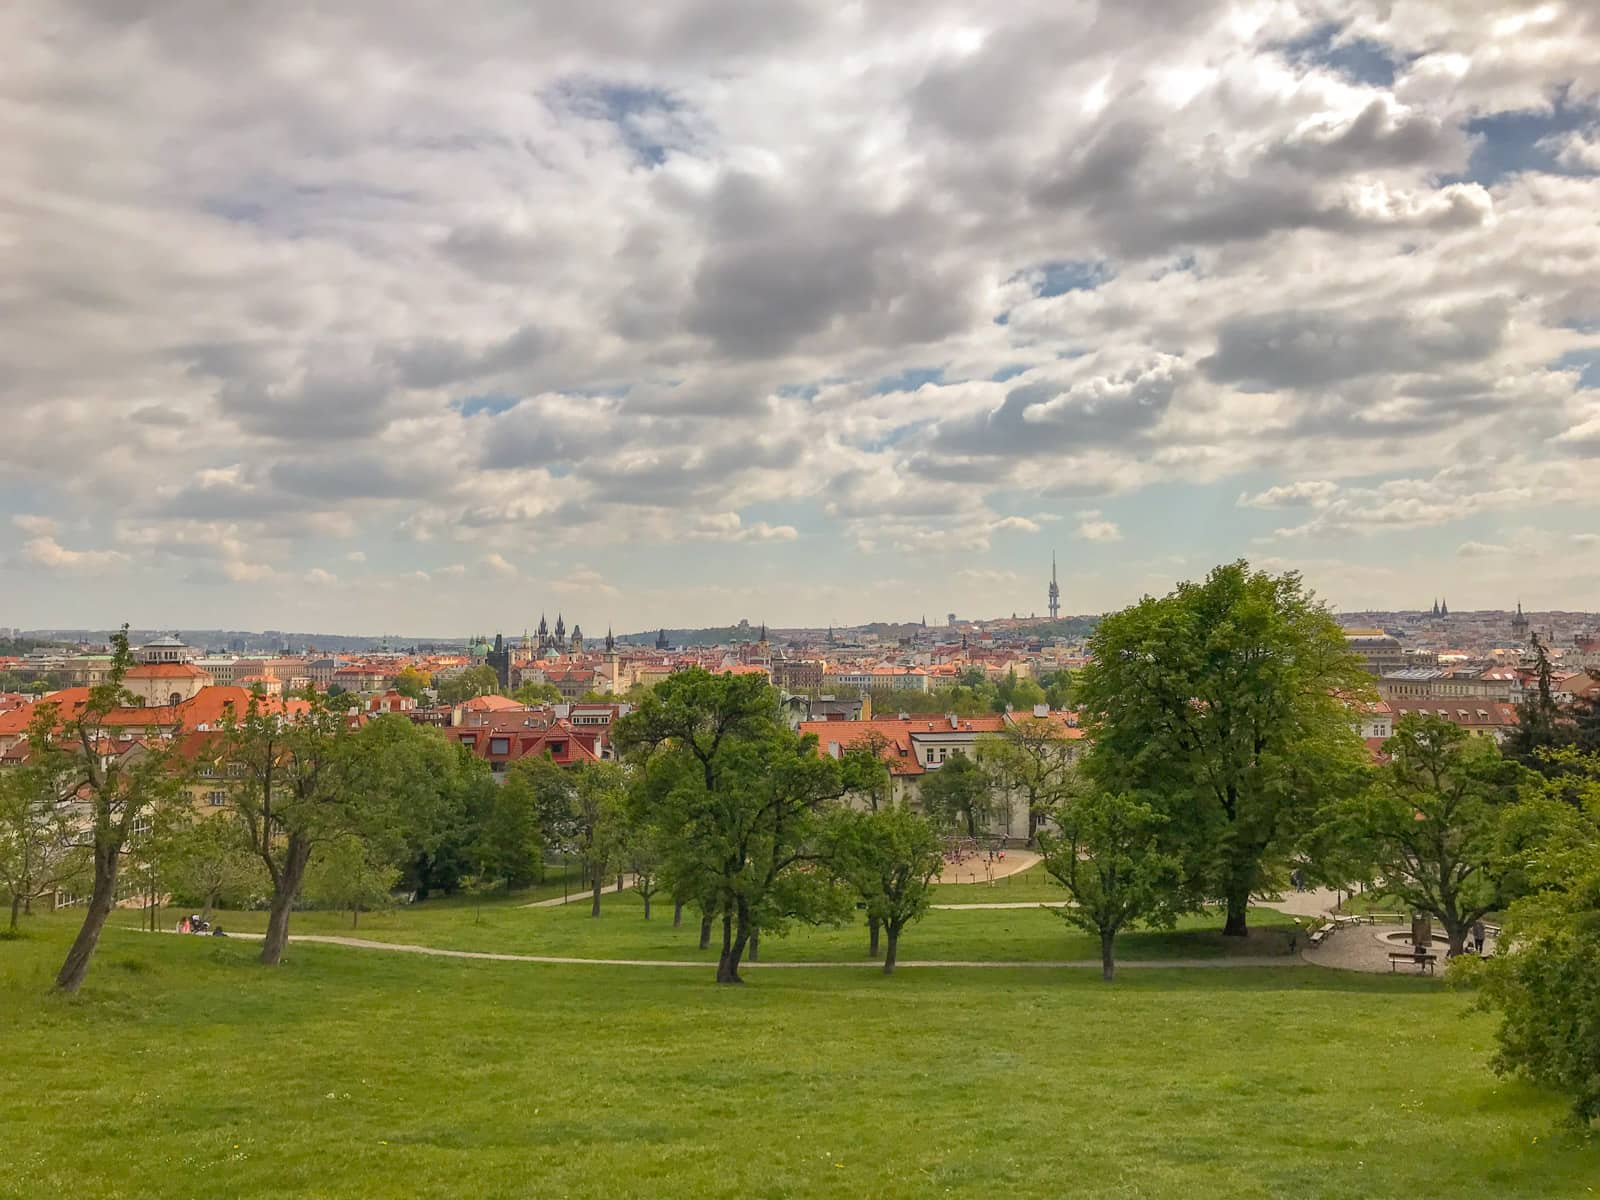 A view of Prague with a wide area of green in the foreground. There are many clouds I the sky